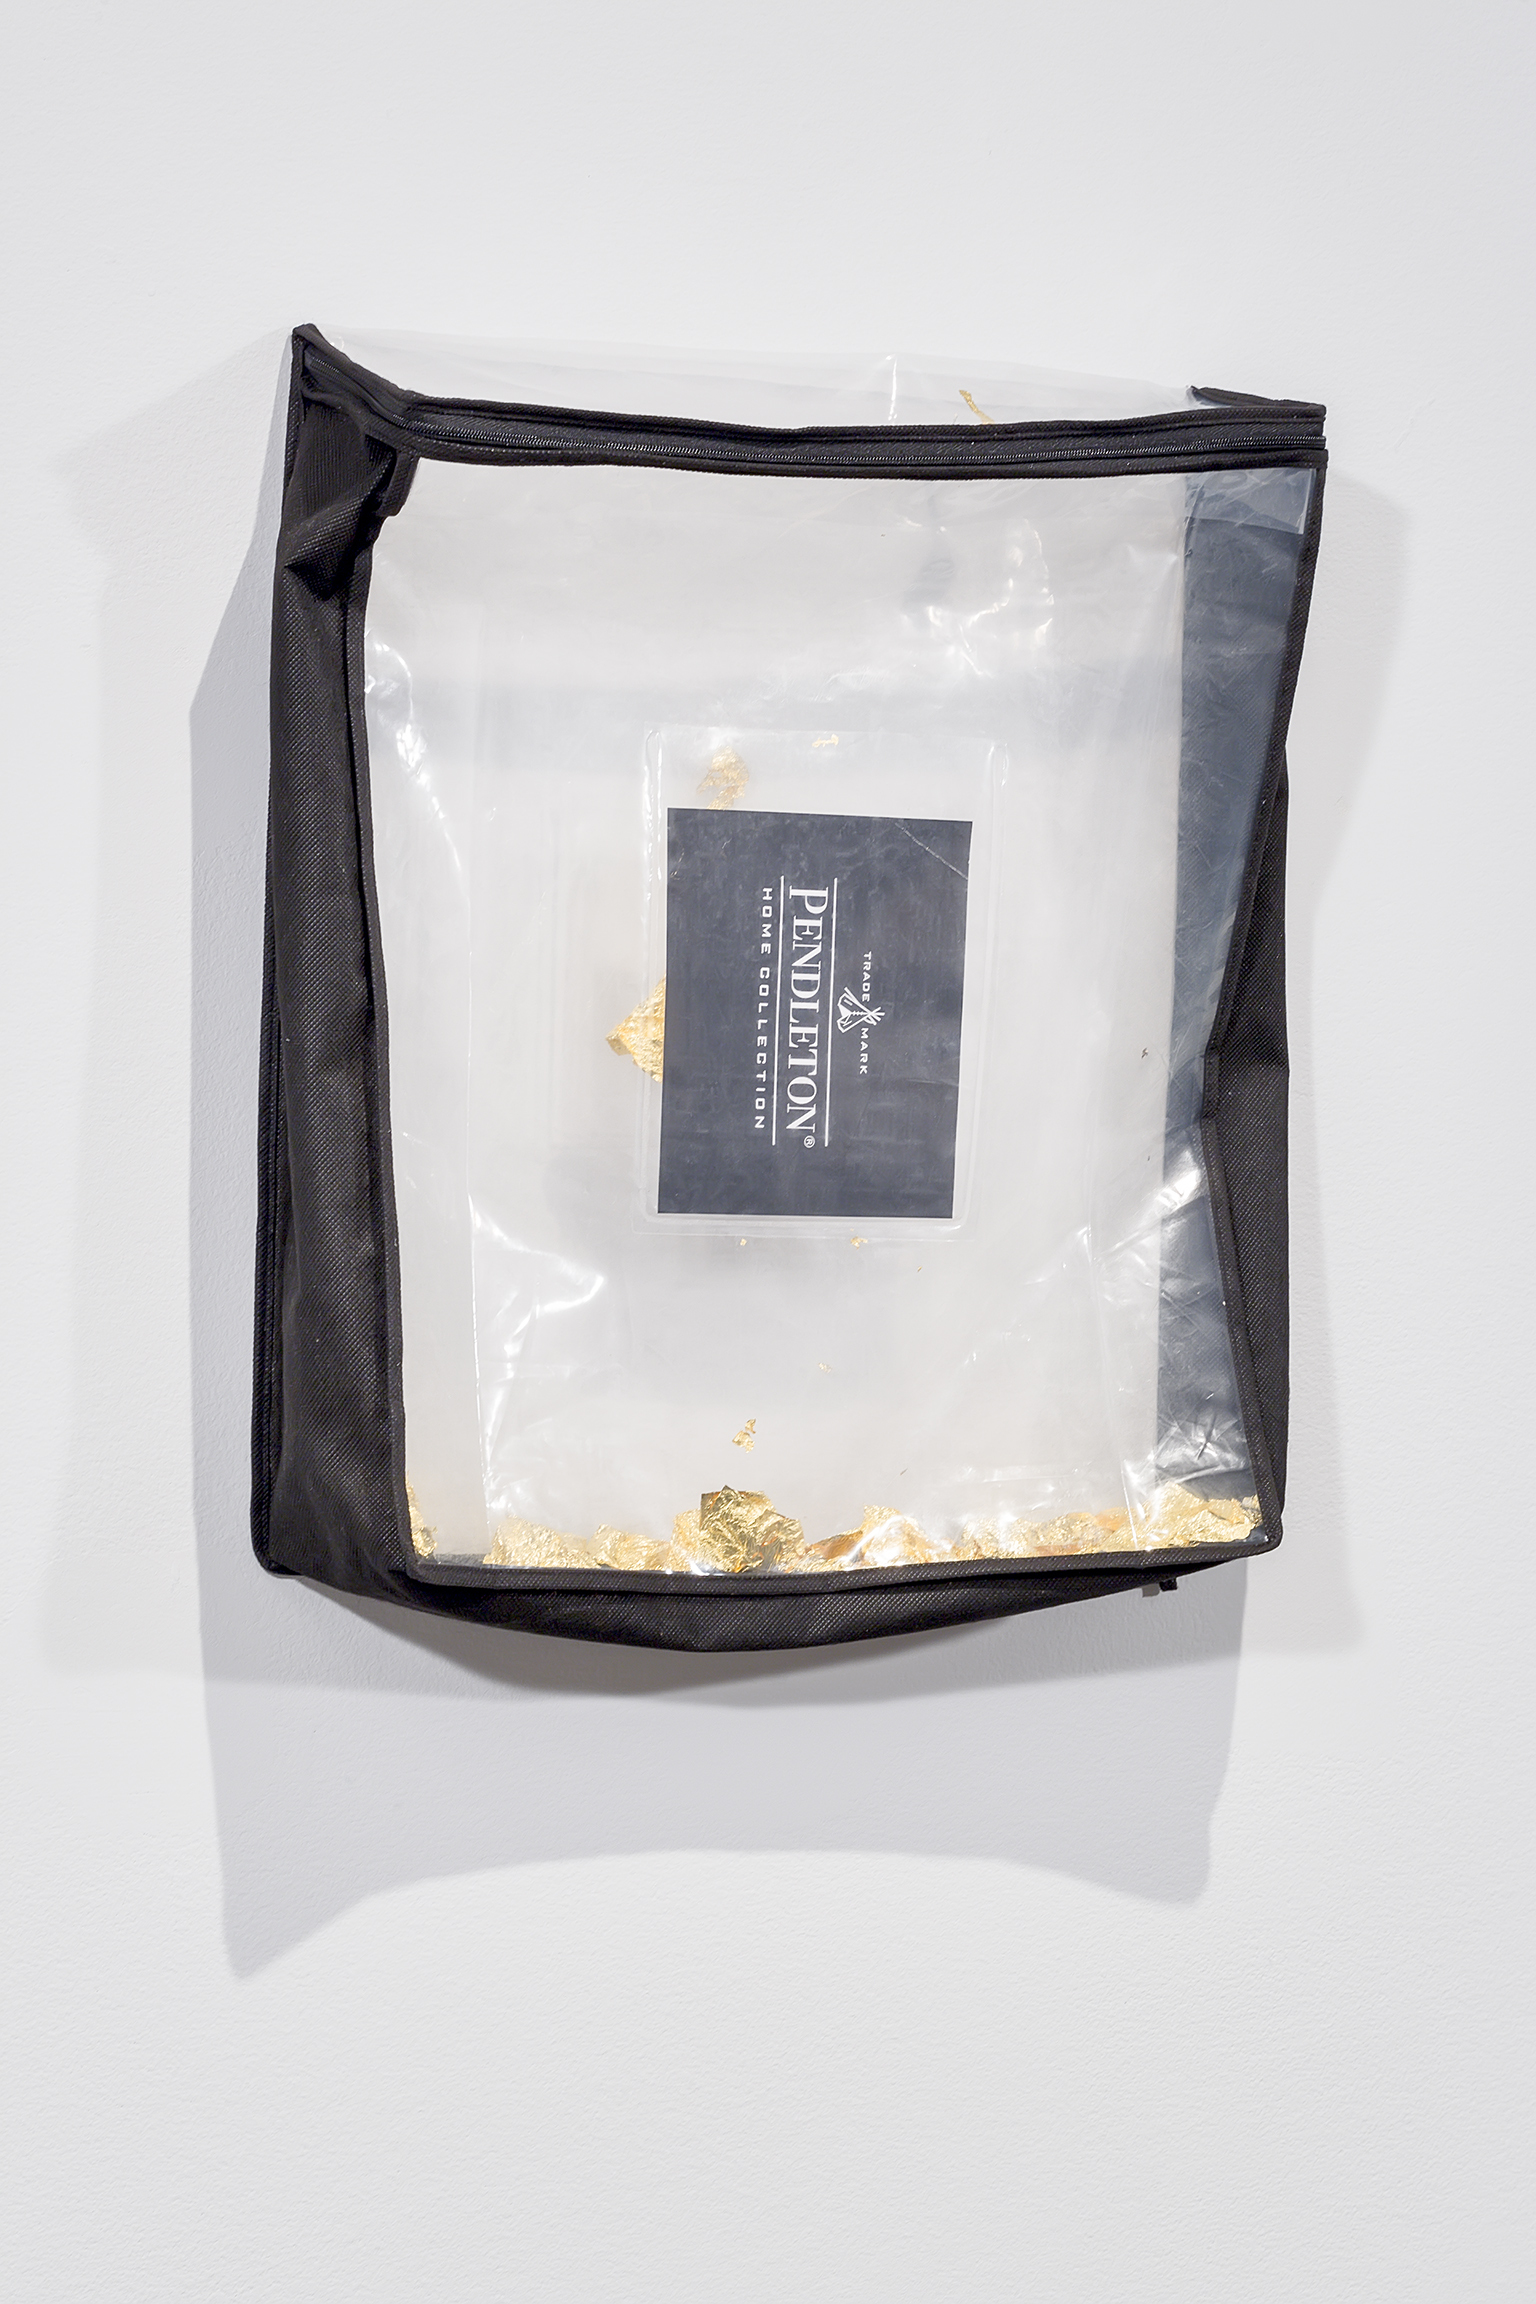 Duane Linklater, Trademark, 2016, gold leaf, plastic bag, 19 x 16 x 4 in. (48 x 40 x 9 cm) by